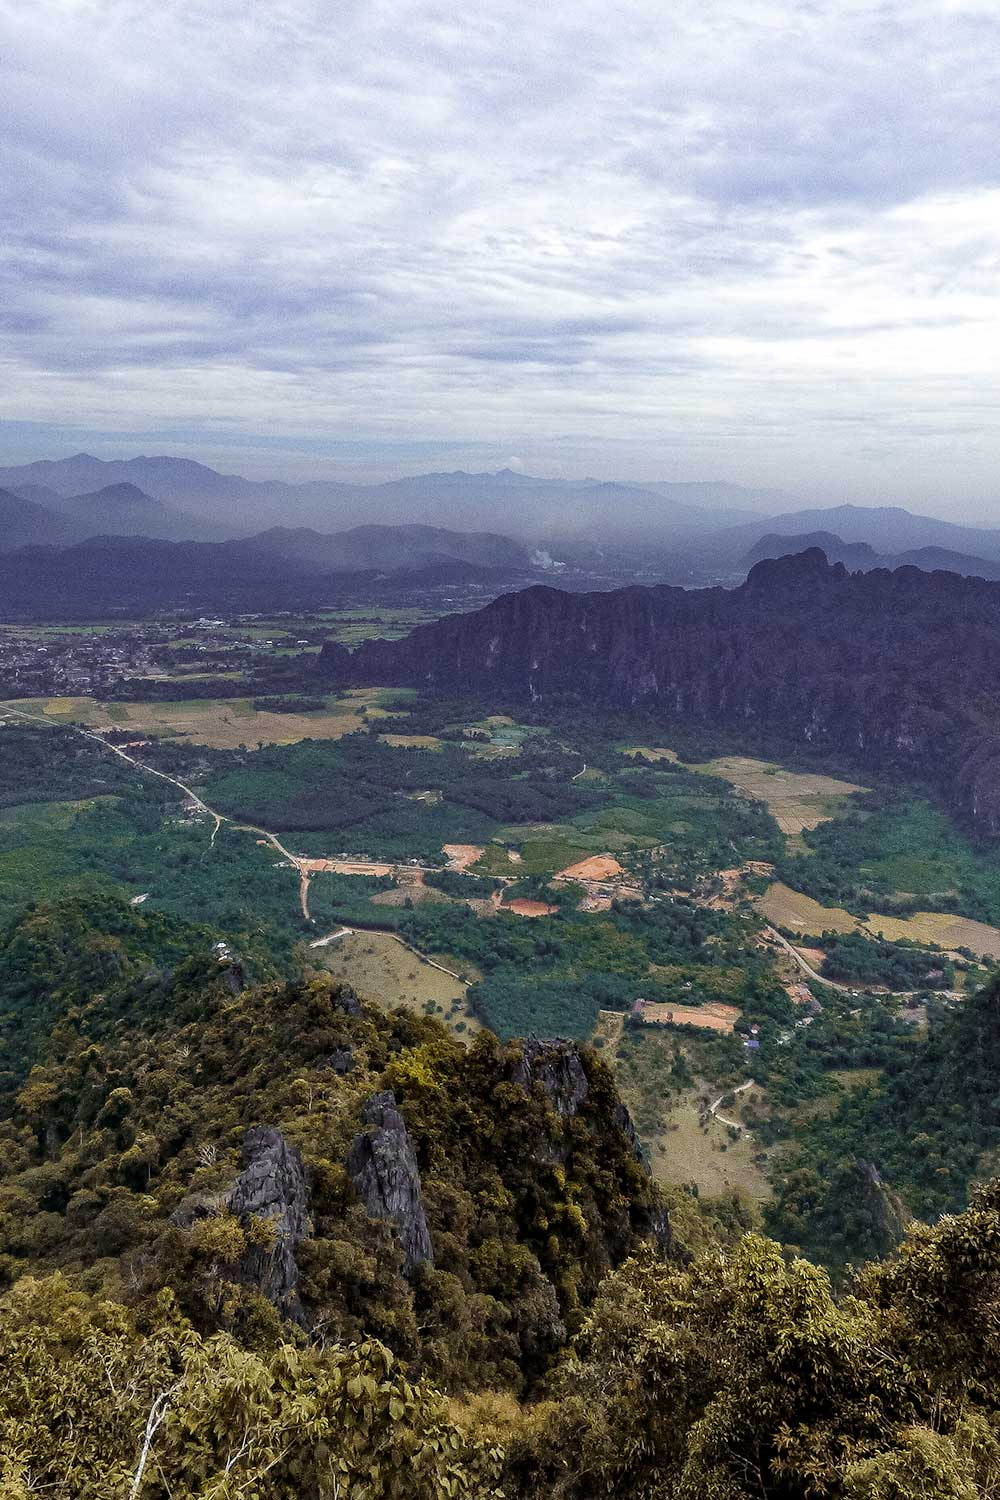 Gorgeous viewpoints over Laos' rice fields in Vang Vieng